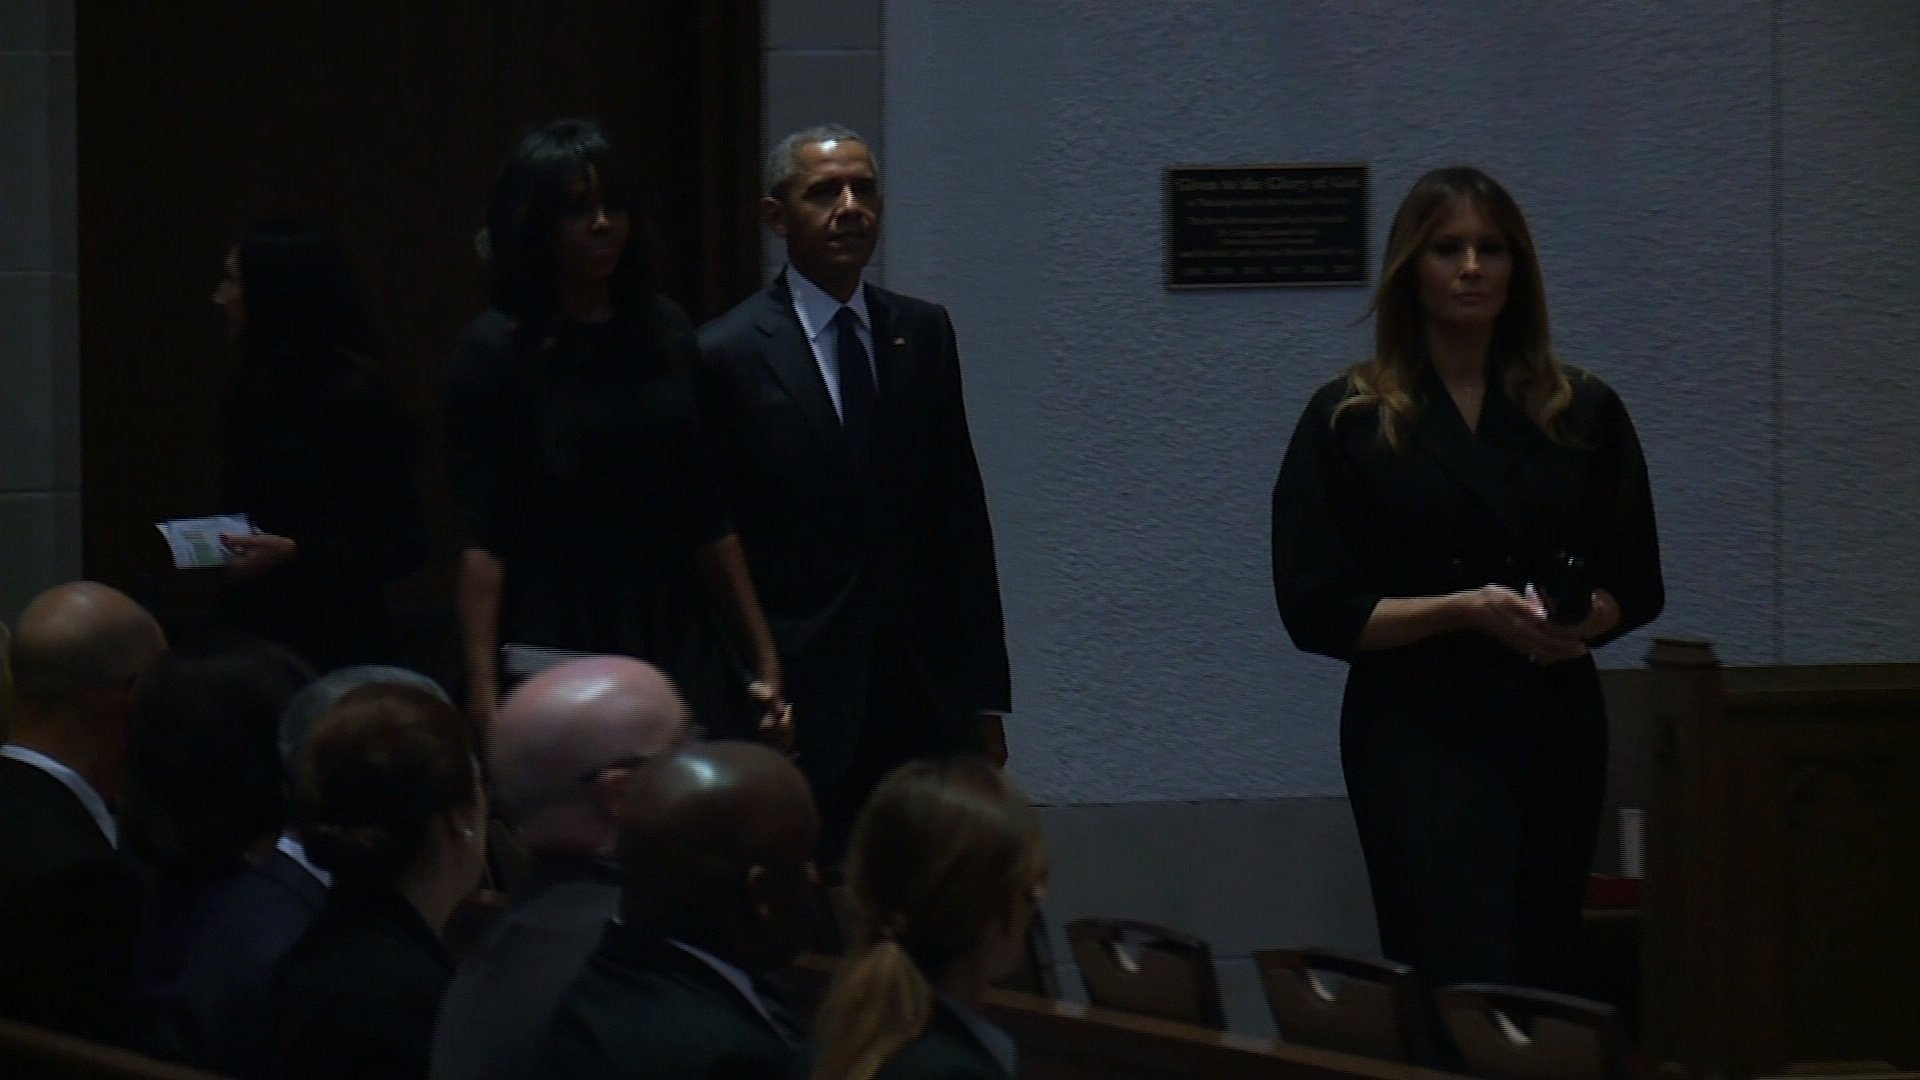 First Lady Melania Trump, former President Barack Obama and former First Lady Michelle Obama are seen here inside of St. Martin's Episcopal Church for the funeral of former First Lady Barbara Bush.